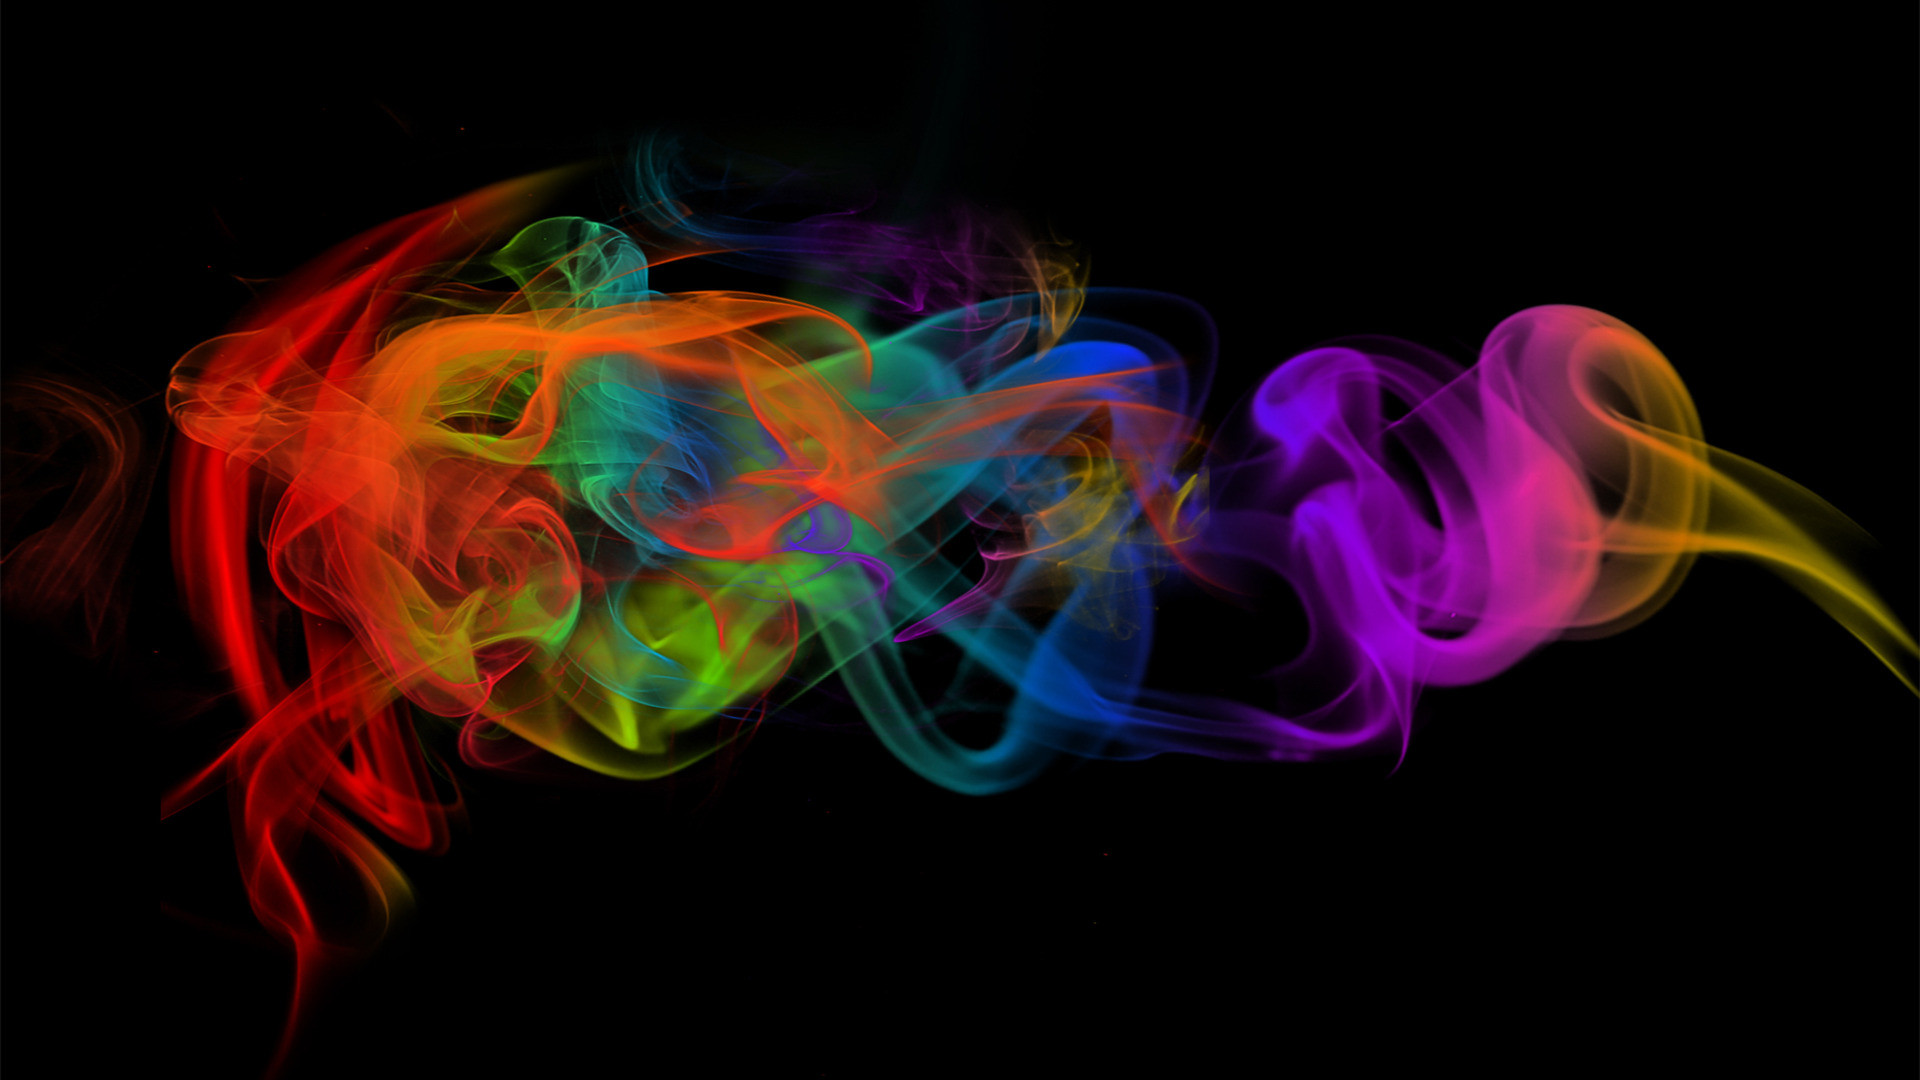 1920x1080 colorful wallpaper: Trippy Smoke Backgrounds Tumblr (67+ Images